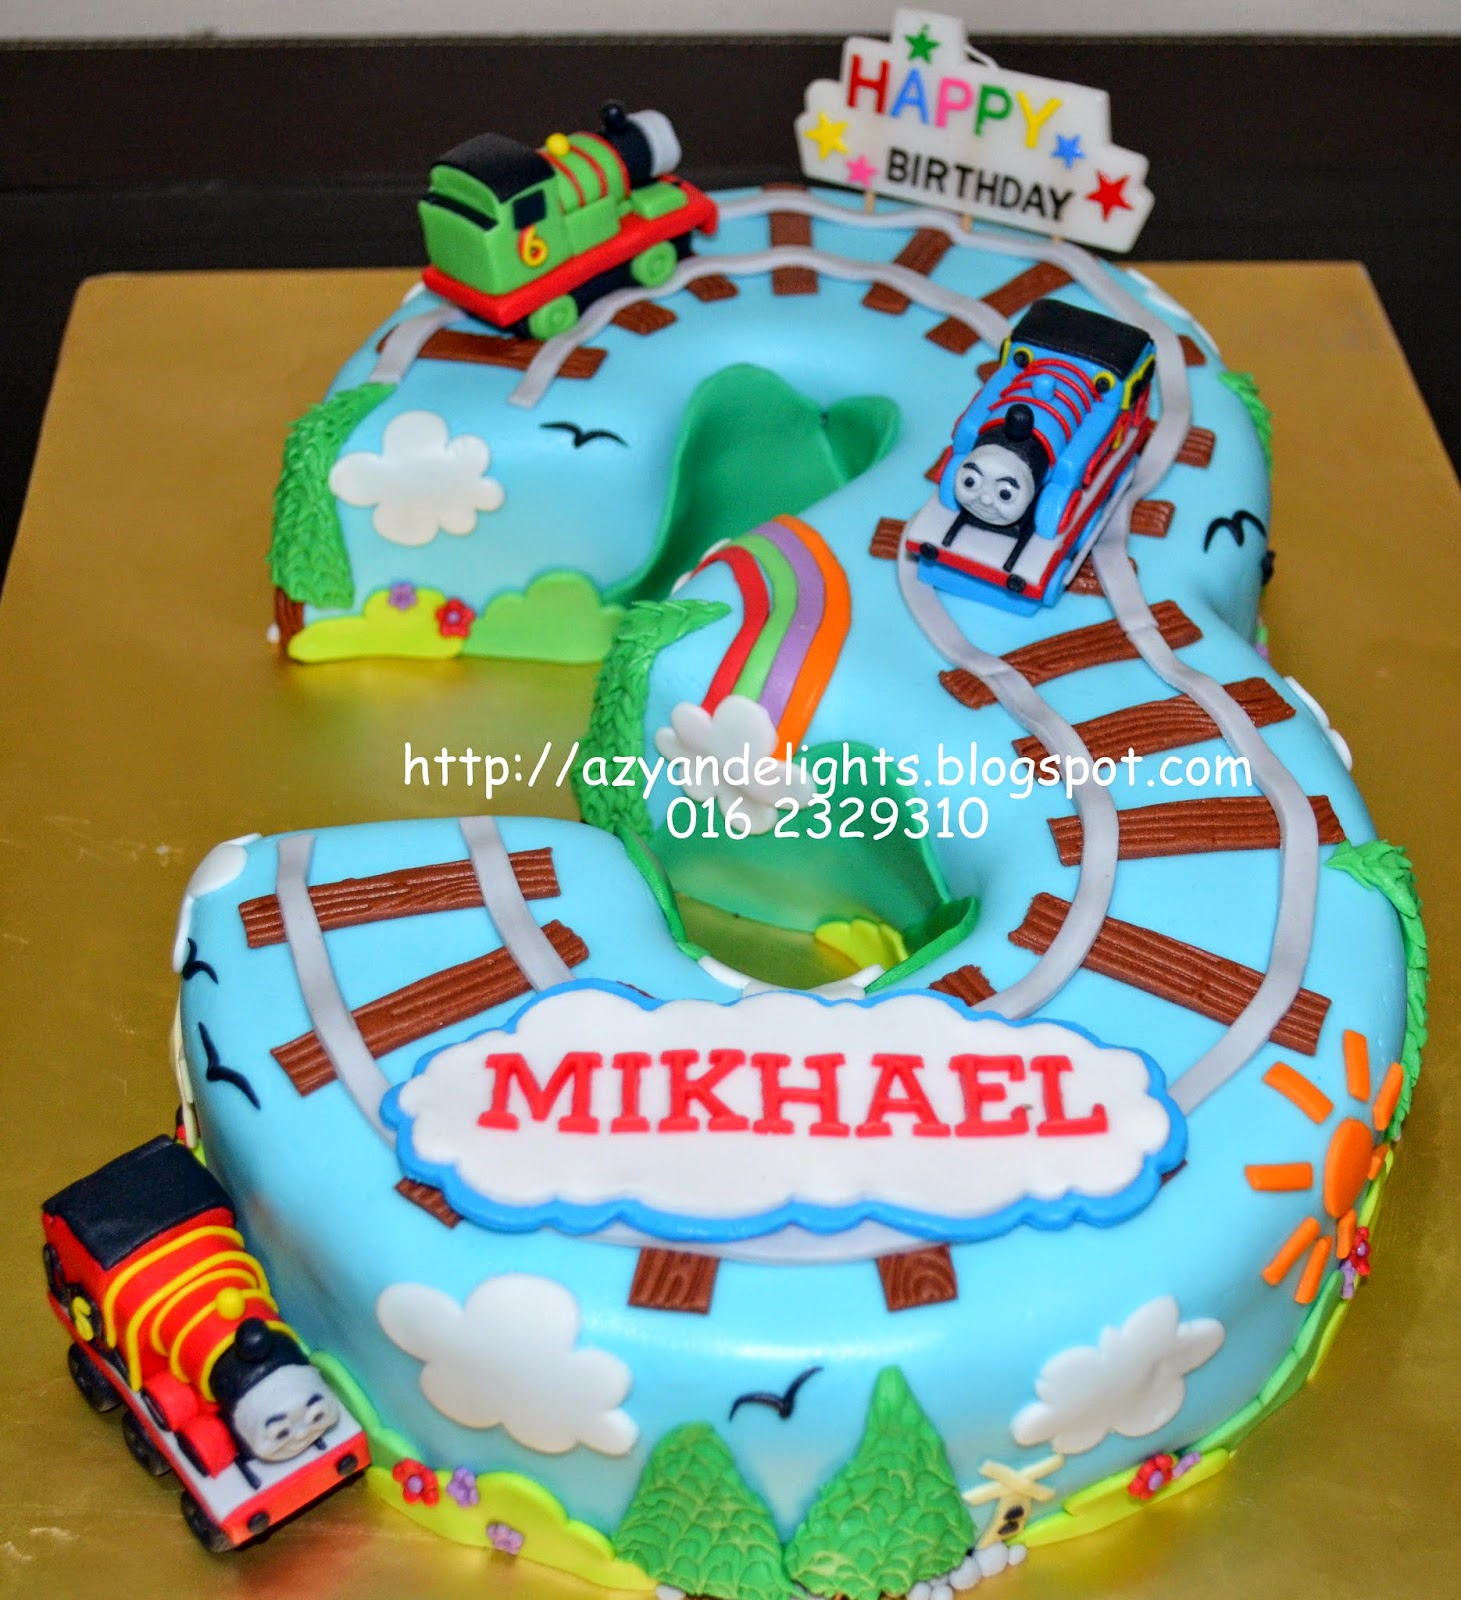 Azyandelights Number 3 Cake Thomas and Friends